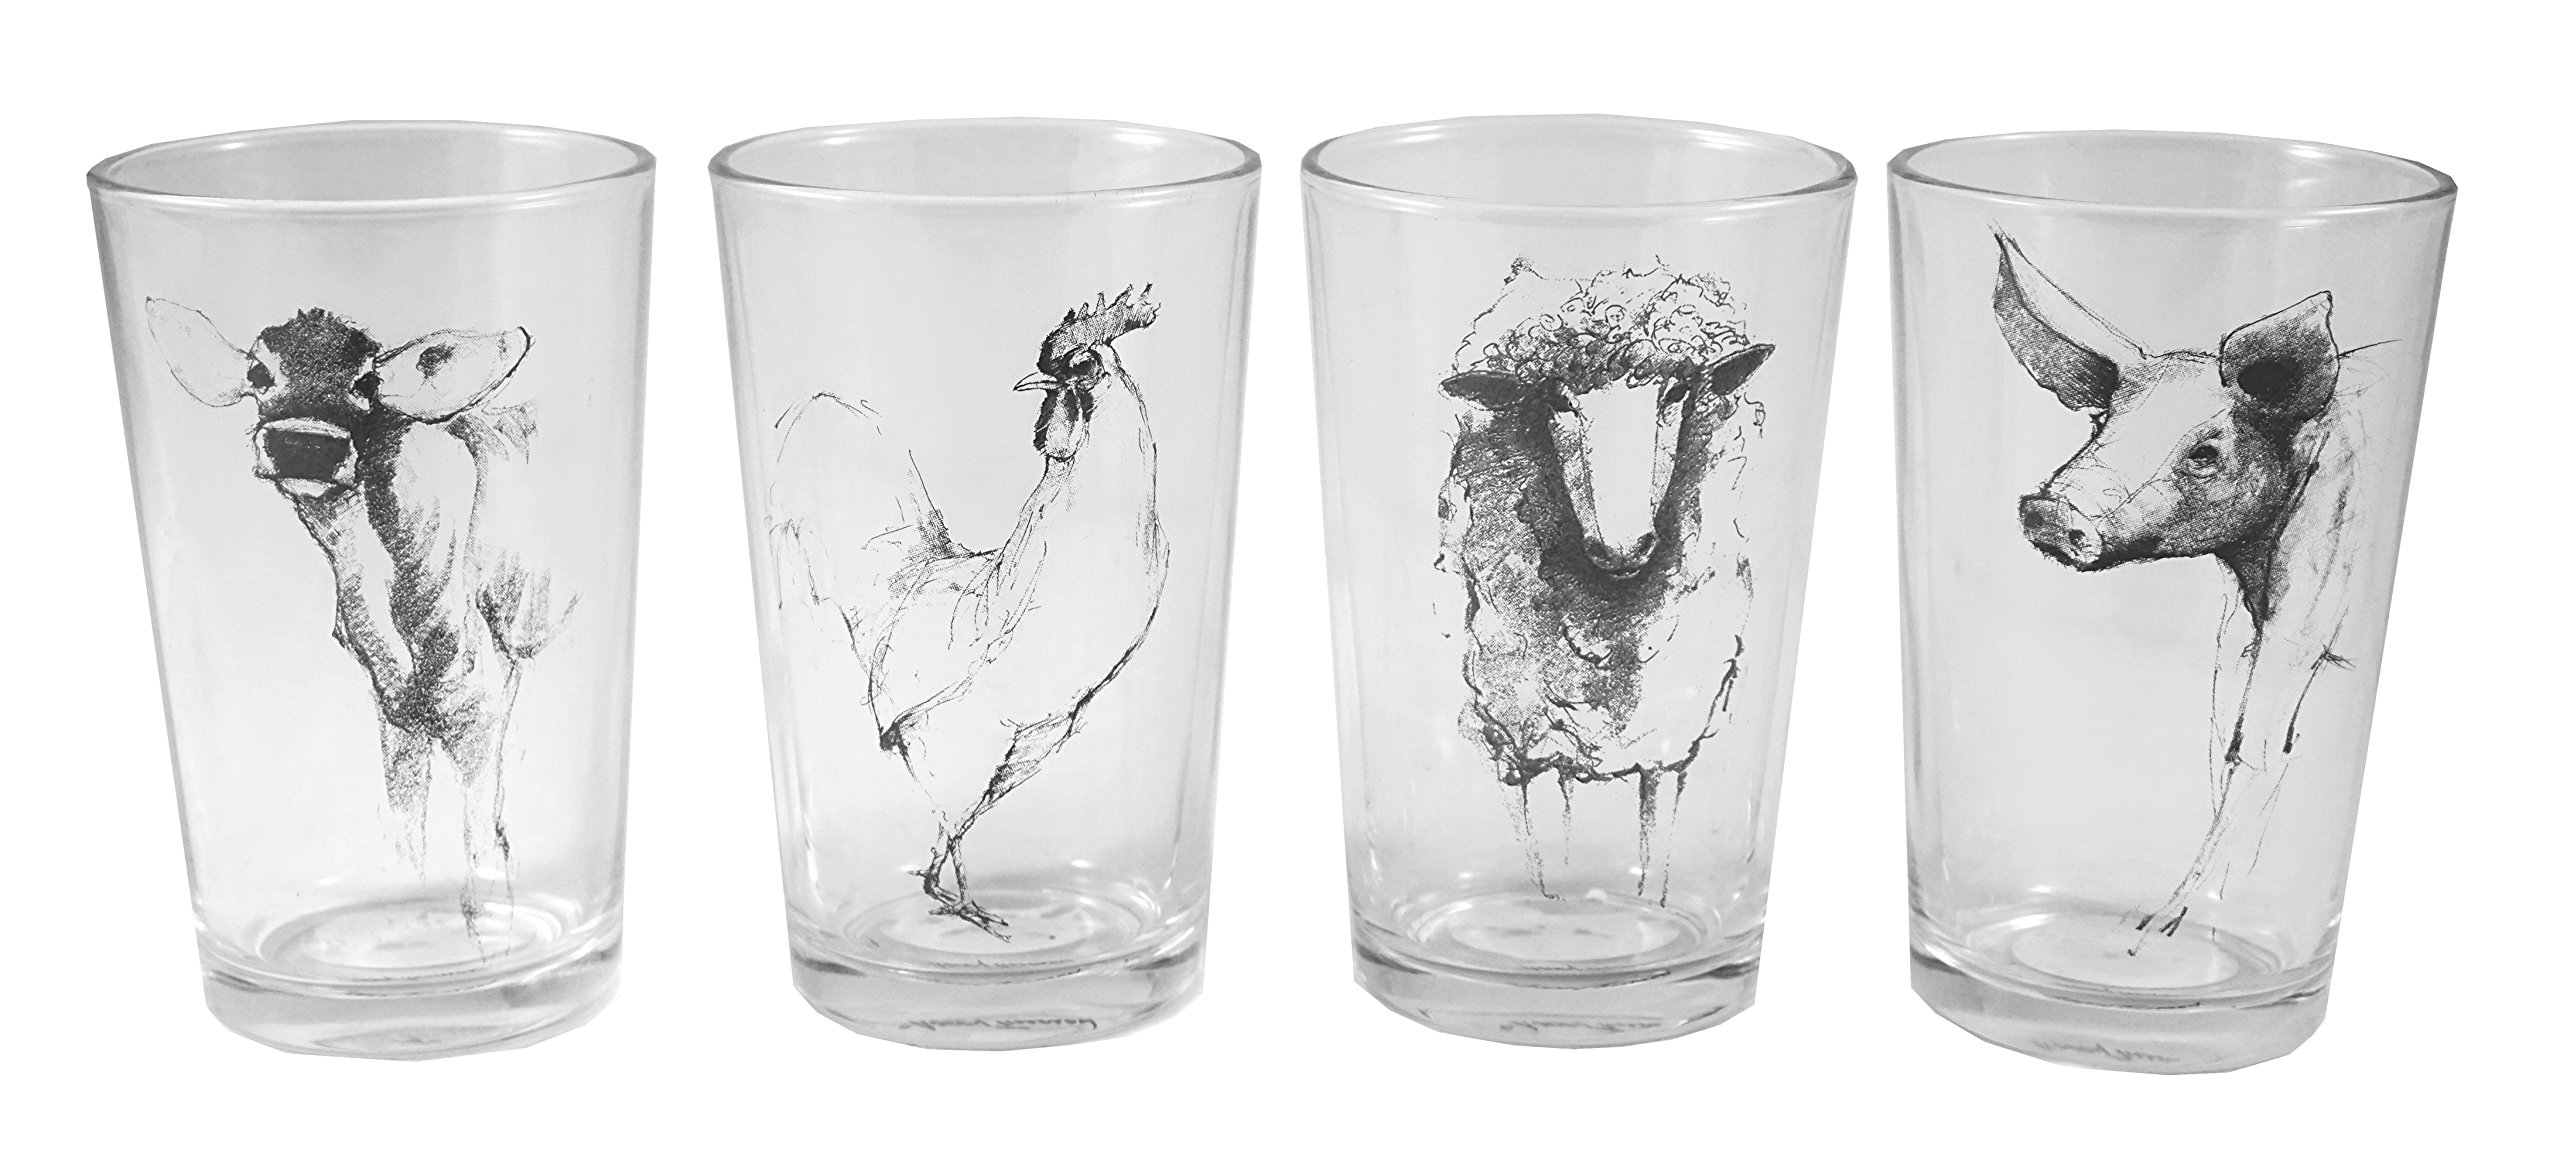 Creative Co-op 4-Inch H, Drinking Glass/Votive Holder with Farm Animal Decal, Set of 4